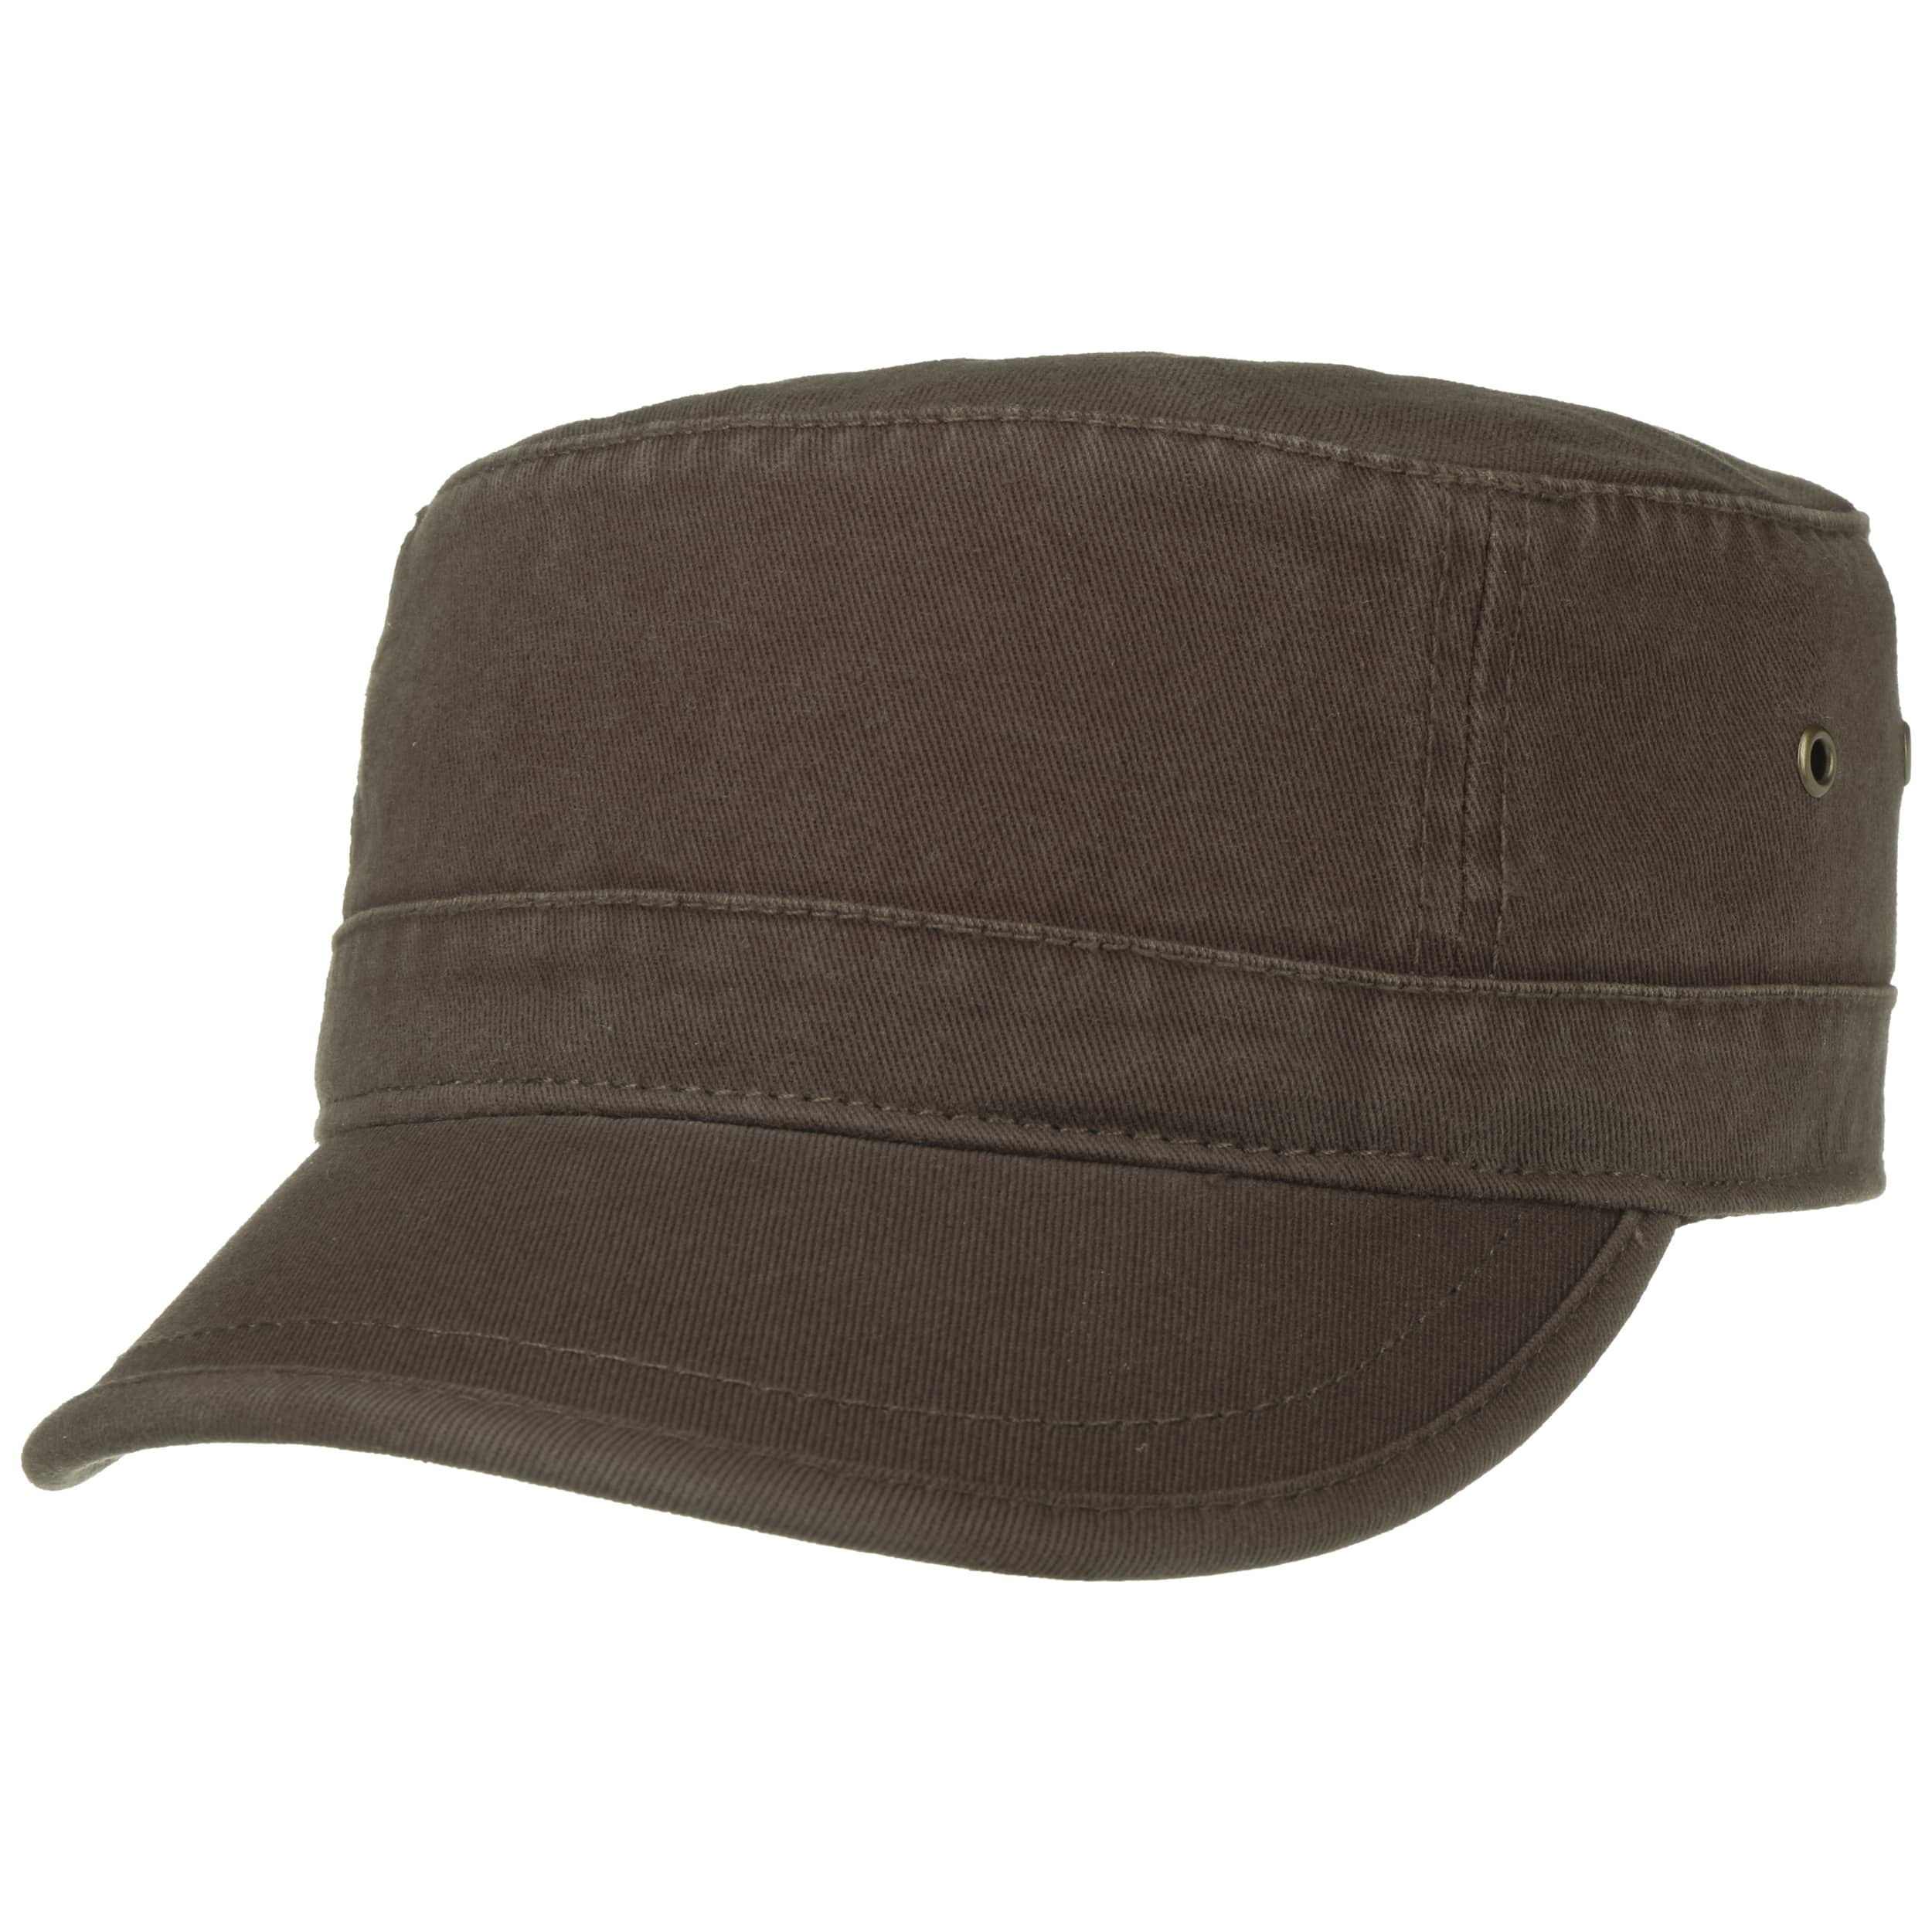 ... Urban Army Cap - brown 5 ... 70e35d248060